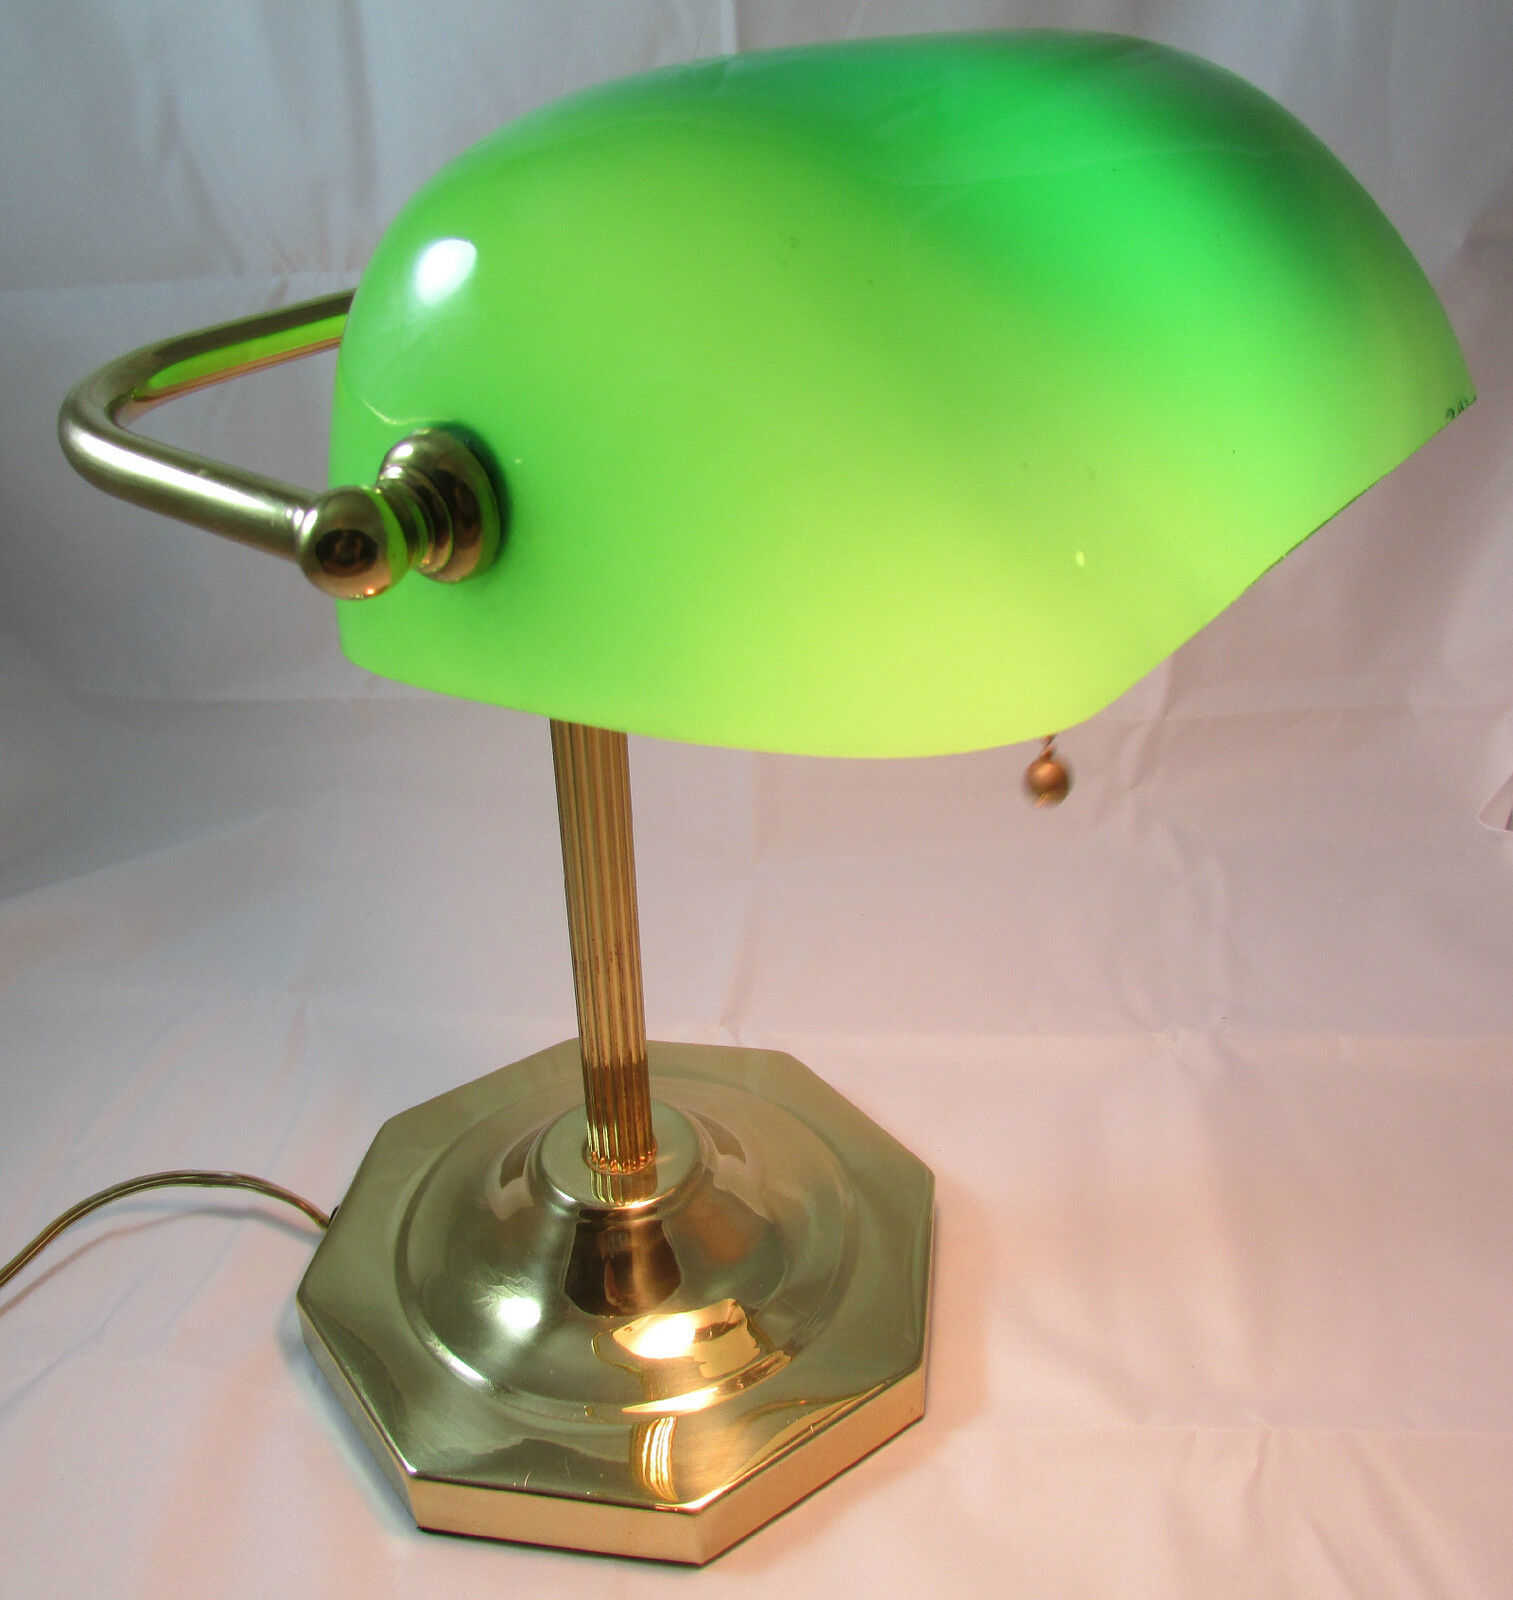 Etonnant Vintage Classic Bankers Office Desk Lamp Piano Light Brass Green Glass 1 Of  10Only 1 Available Vintage Classic Bankers Office Desk Lamp ...